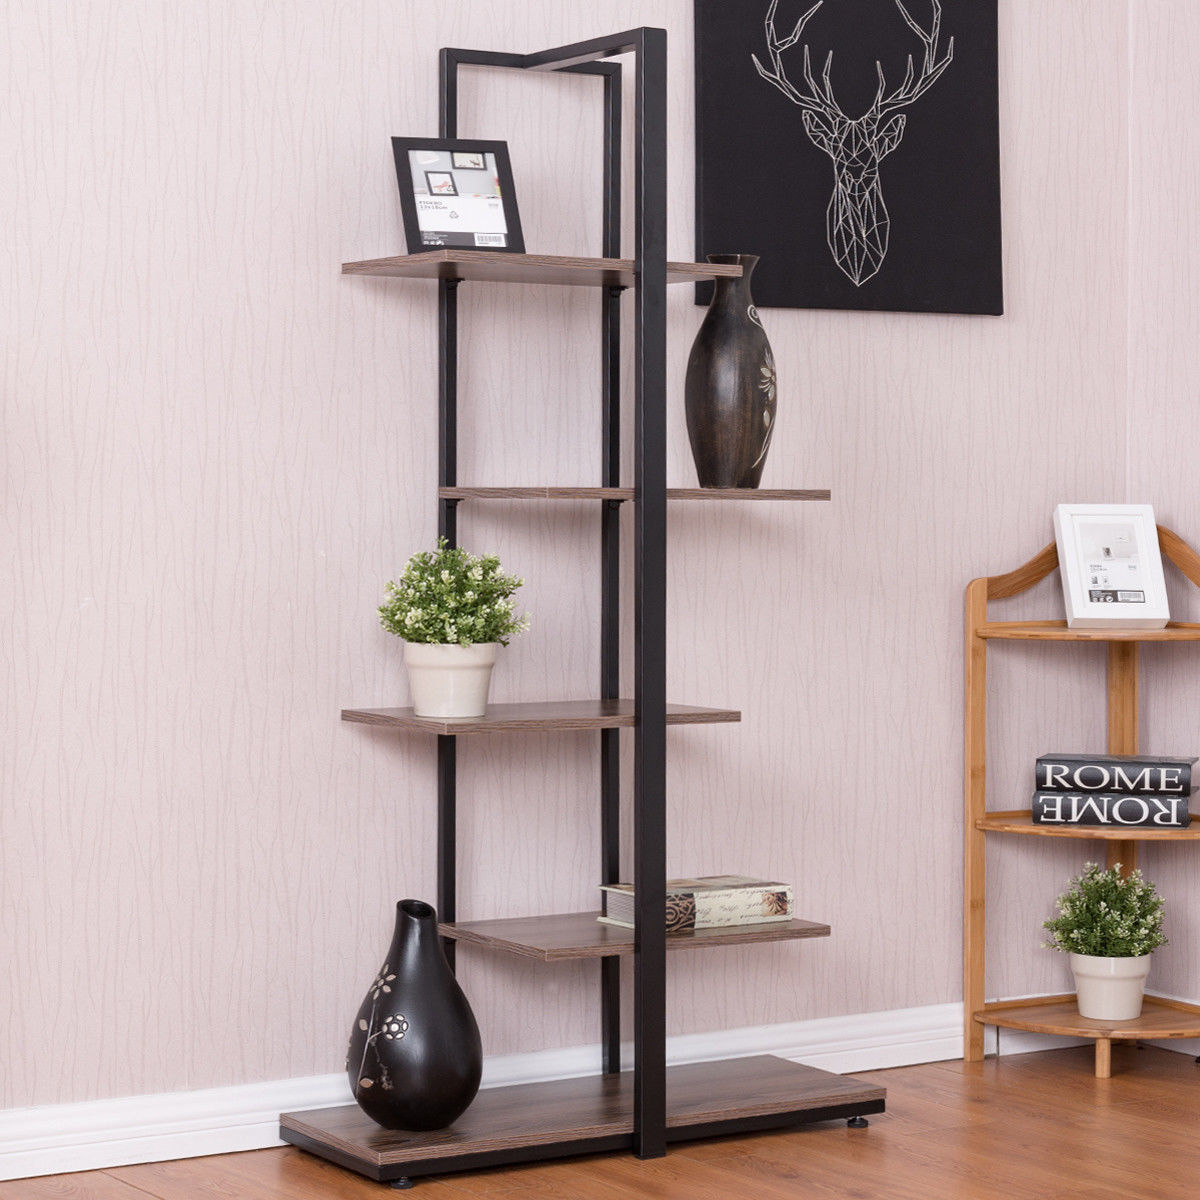 Costway Bookcase 60'' Modern Open Concept Display Etagere Display Shelf Bookshelf Tower by Costway